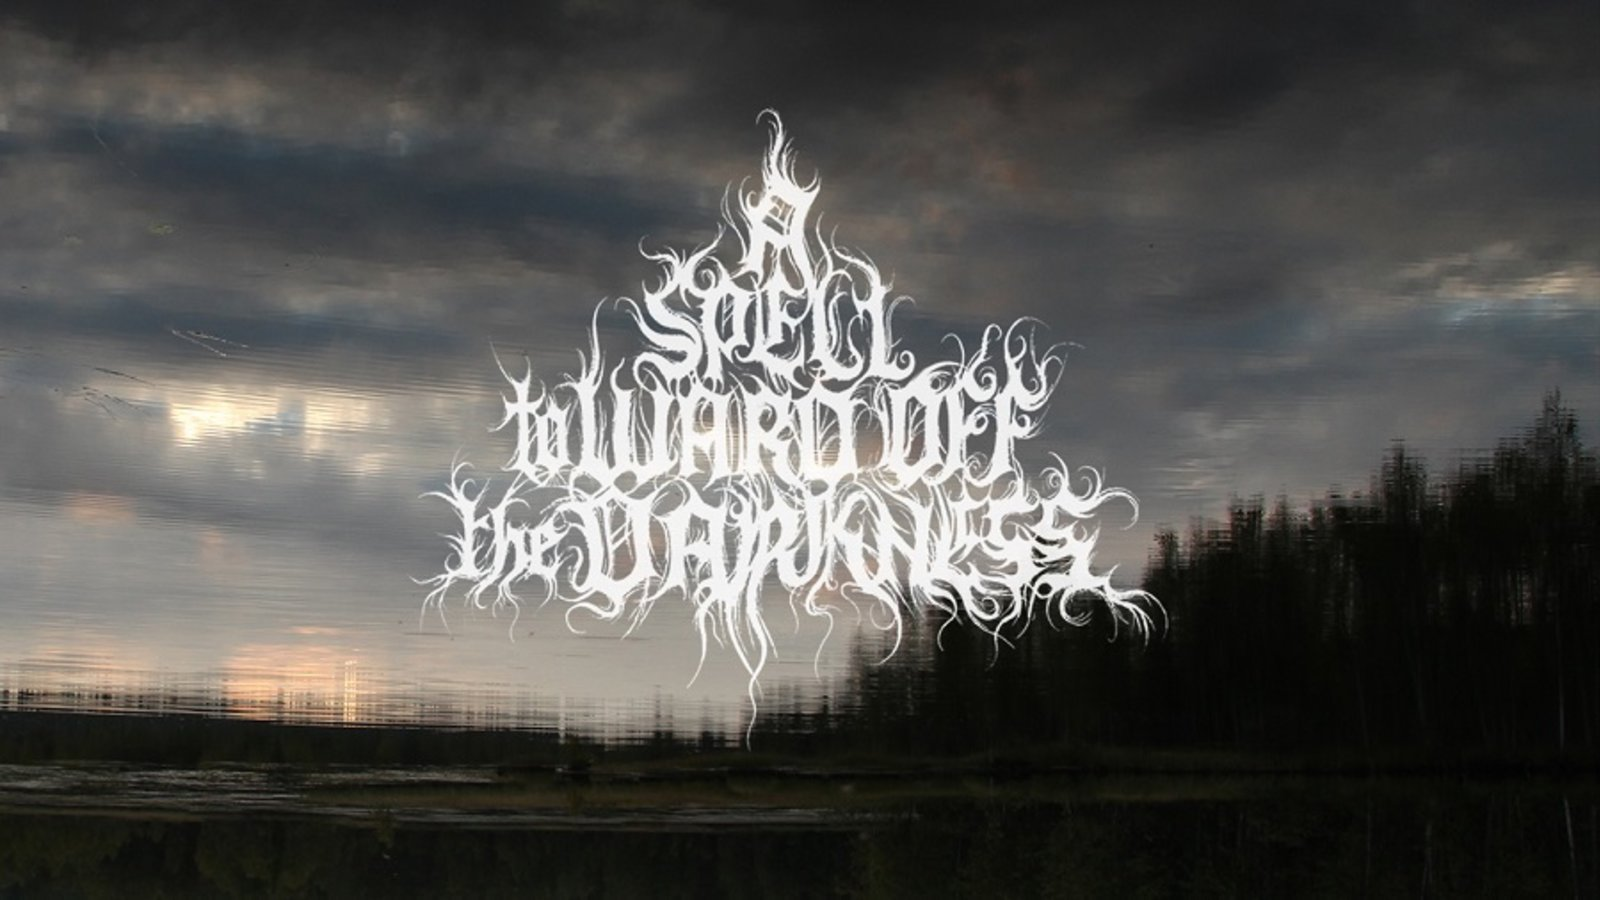 A Spell to Ward Off the Darkness - An Experimental Documentary